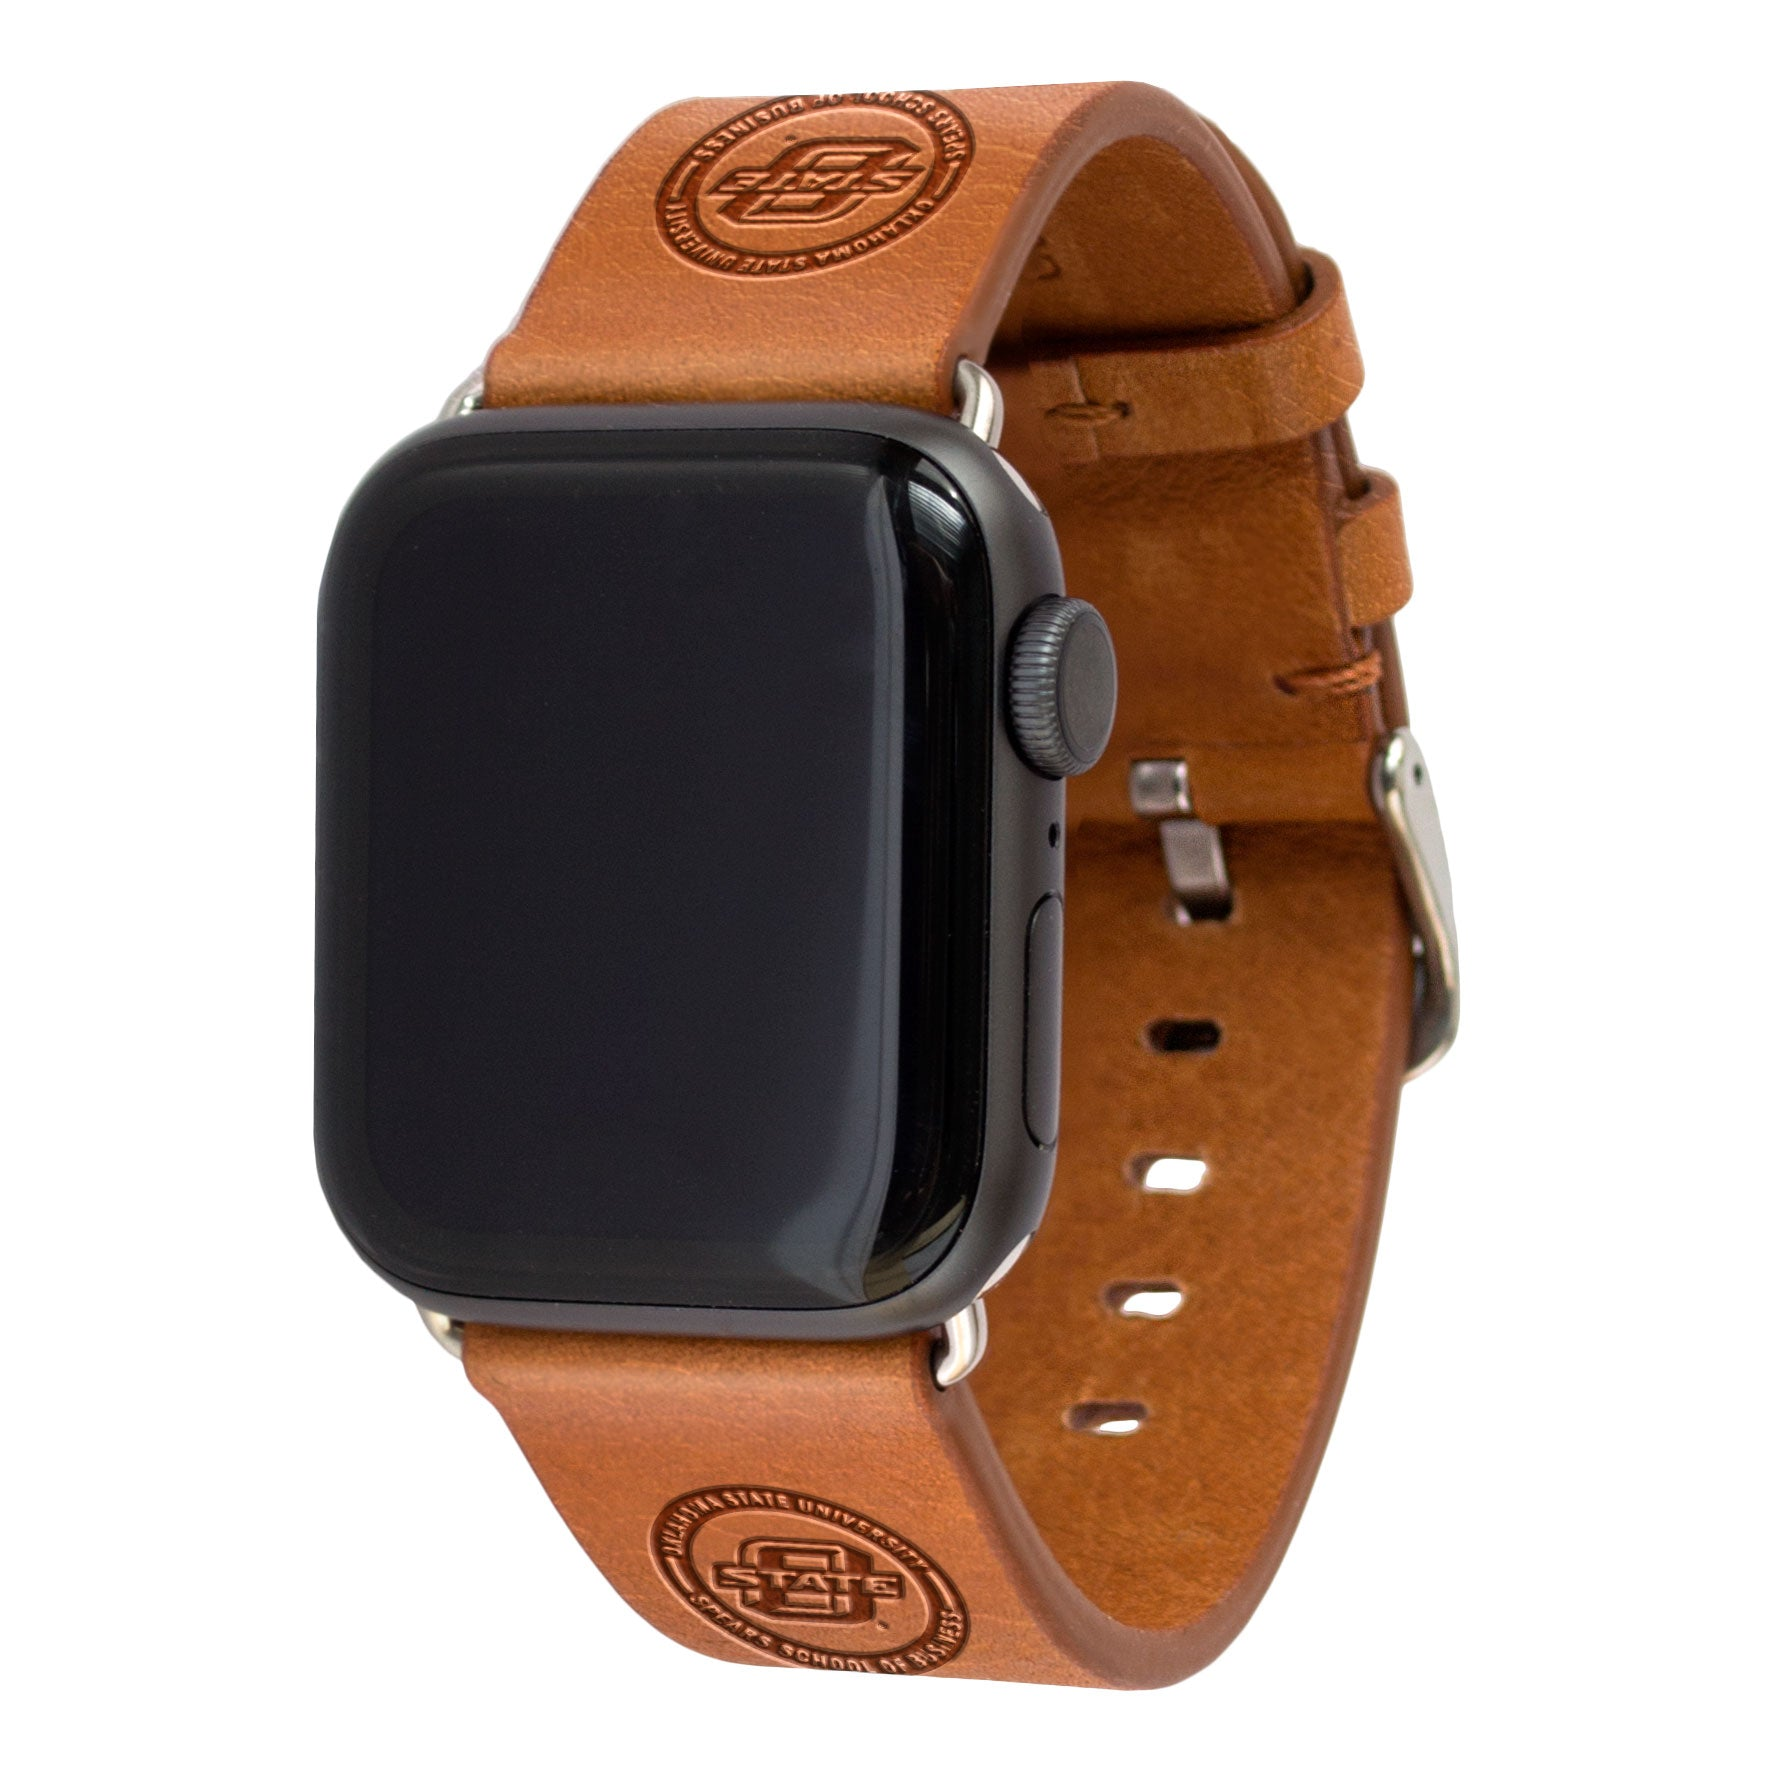 Spears School of Business Leather Apple Watch Band